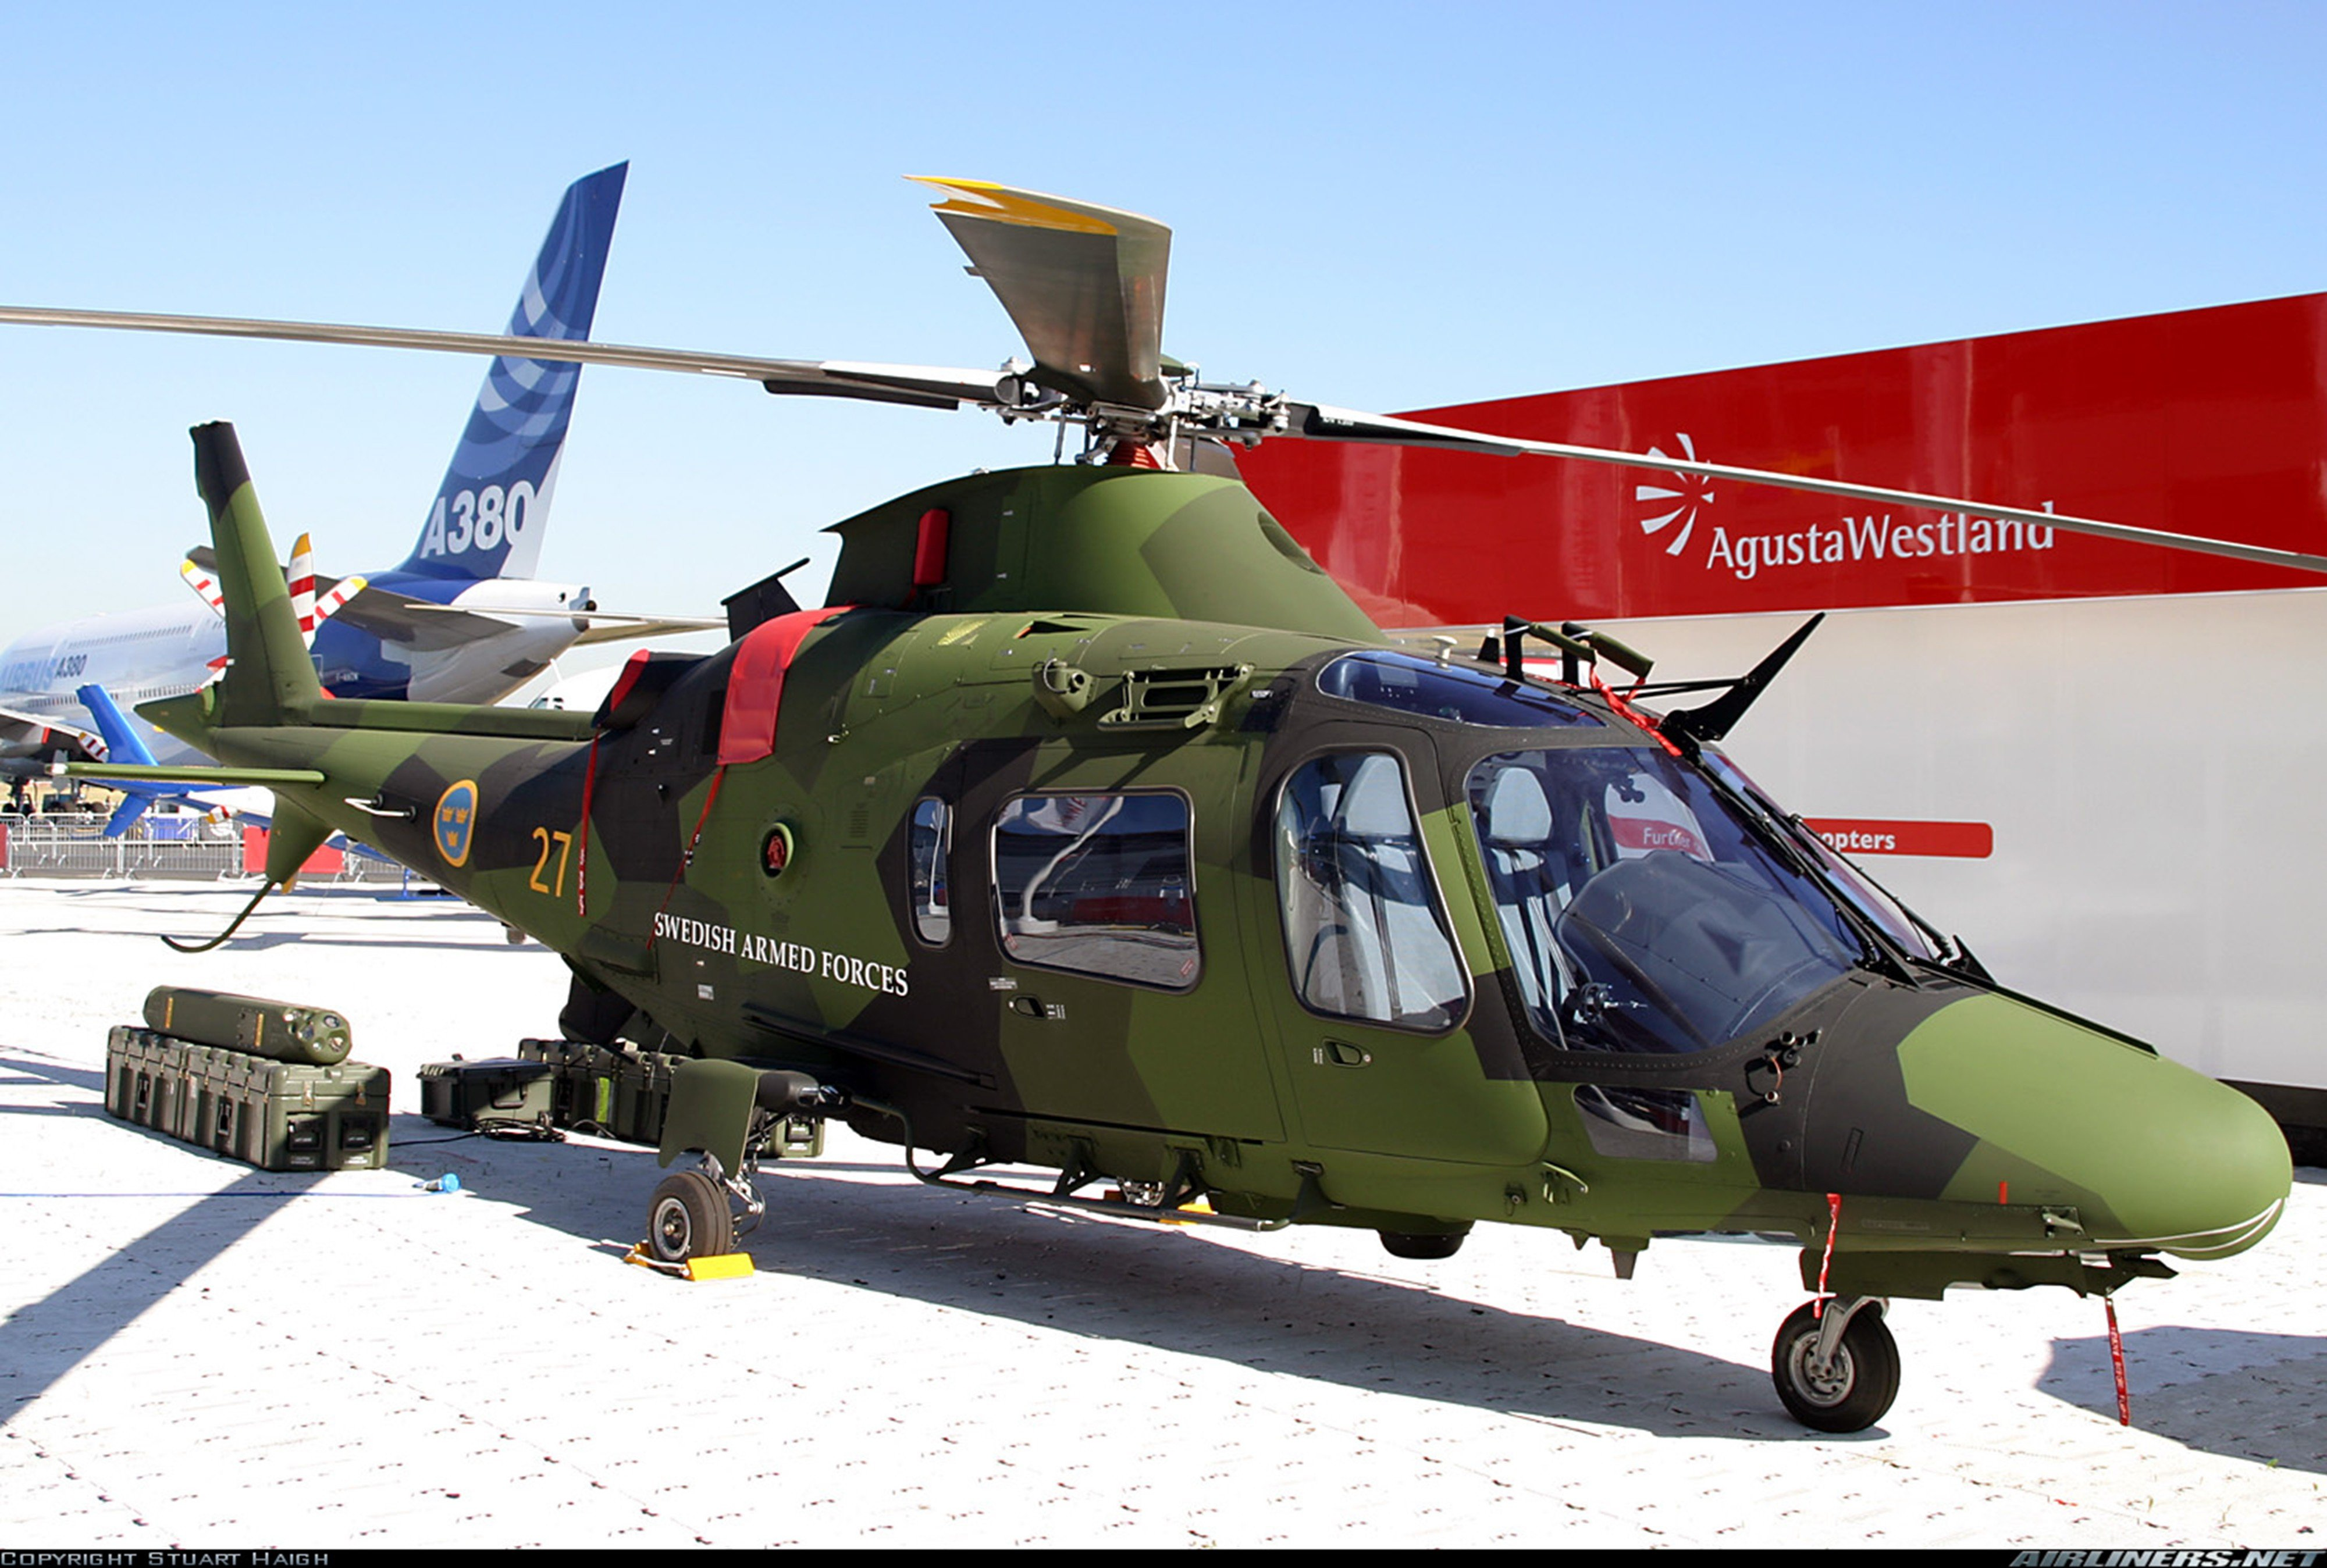 helicopter aircraft Sweden military army agusta westland